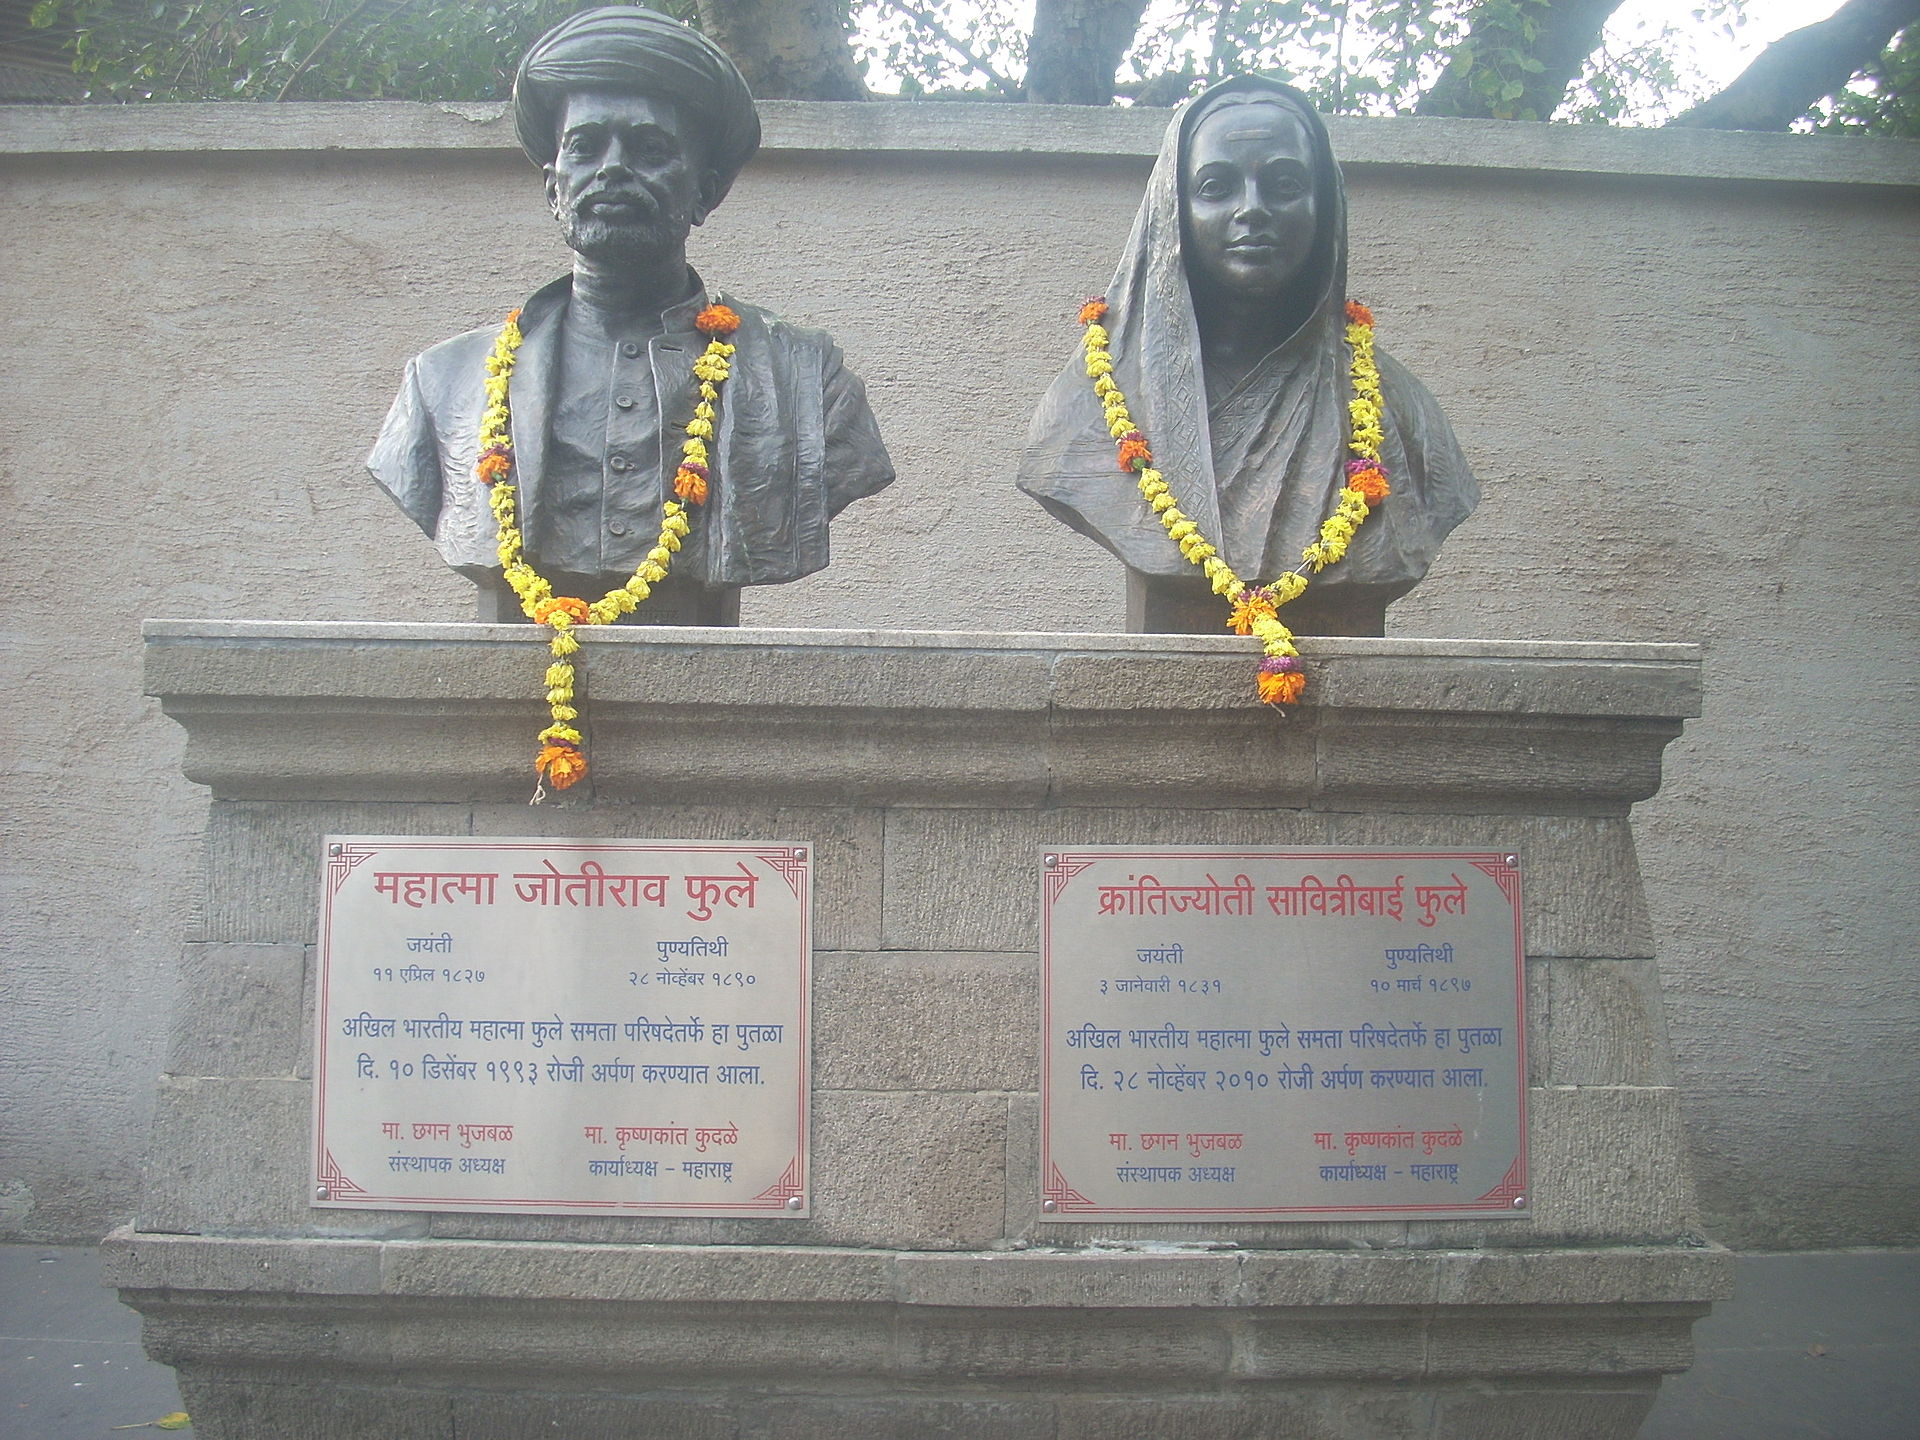 savitribai phule social activists in india free essay Savitribai phule information in hindi with biography and life history in hindi for writing essay for students read  indian novelist .